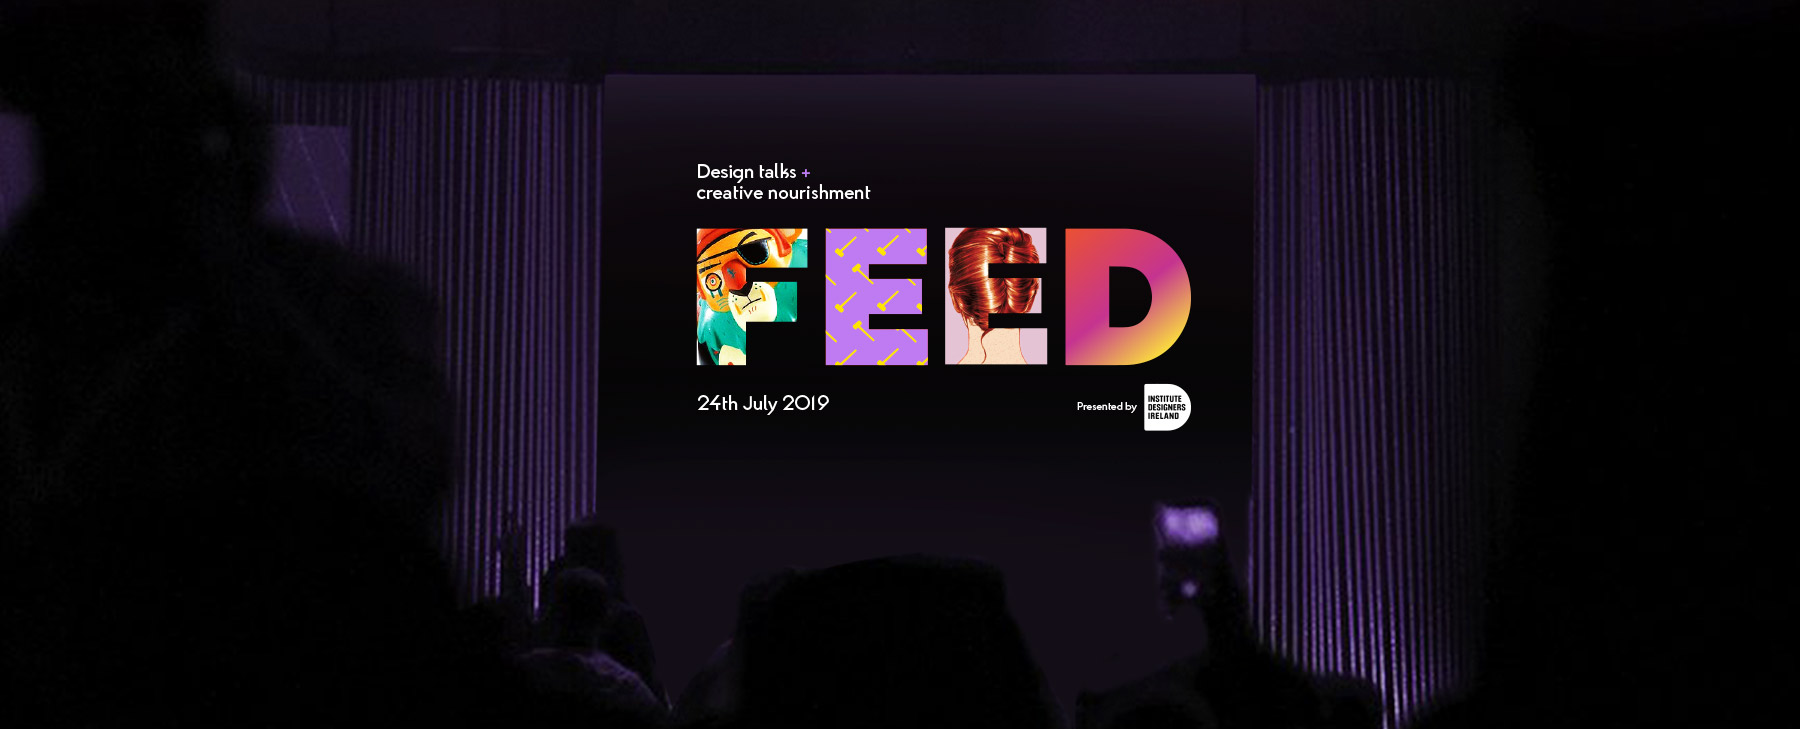 FEED branding on screen at event